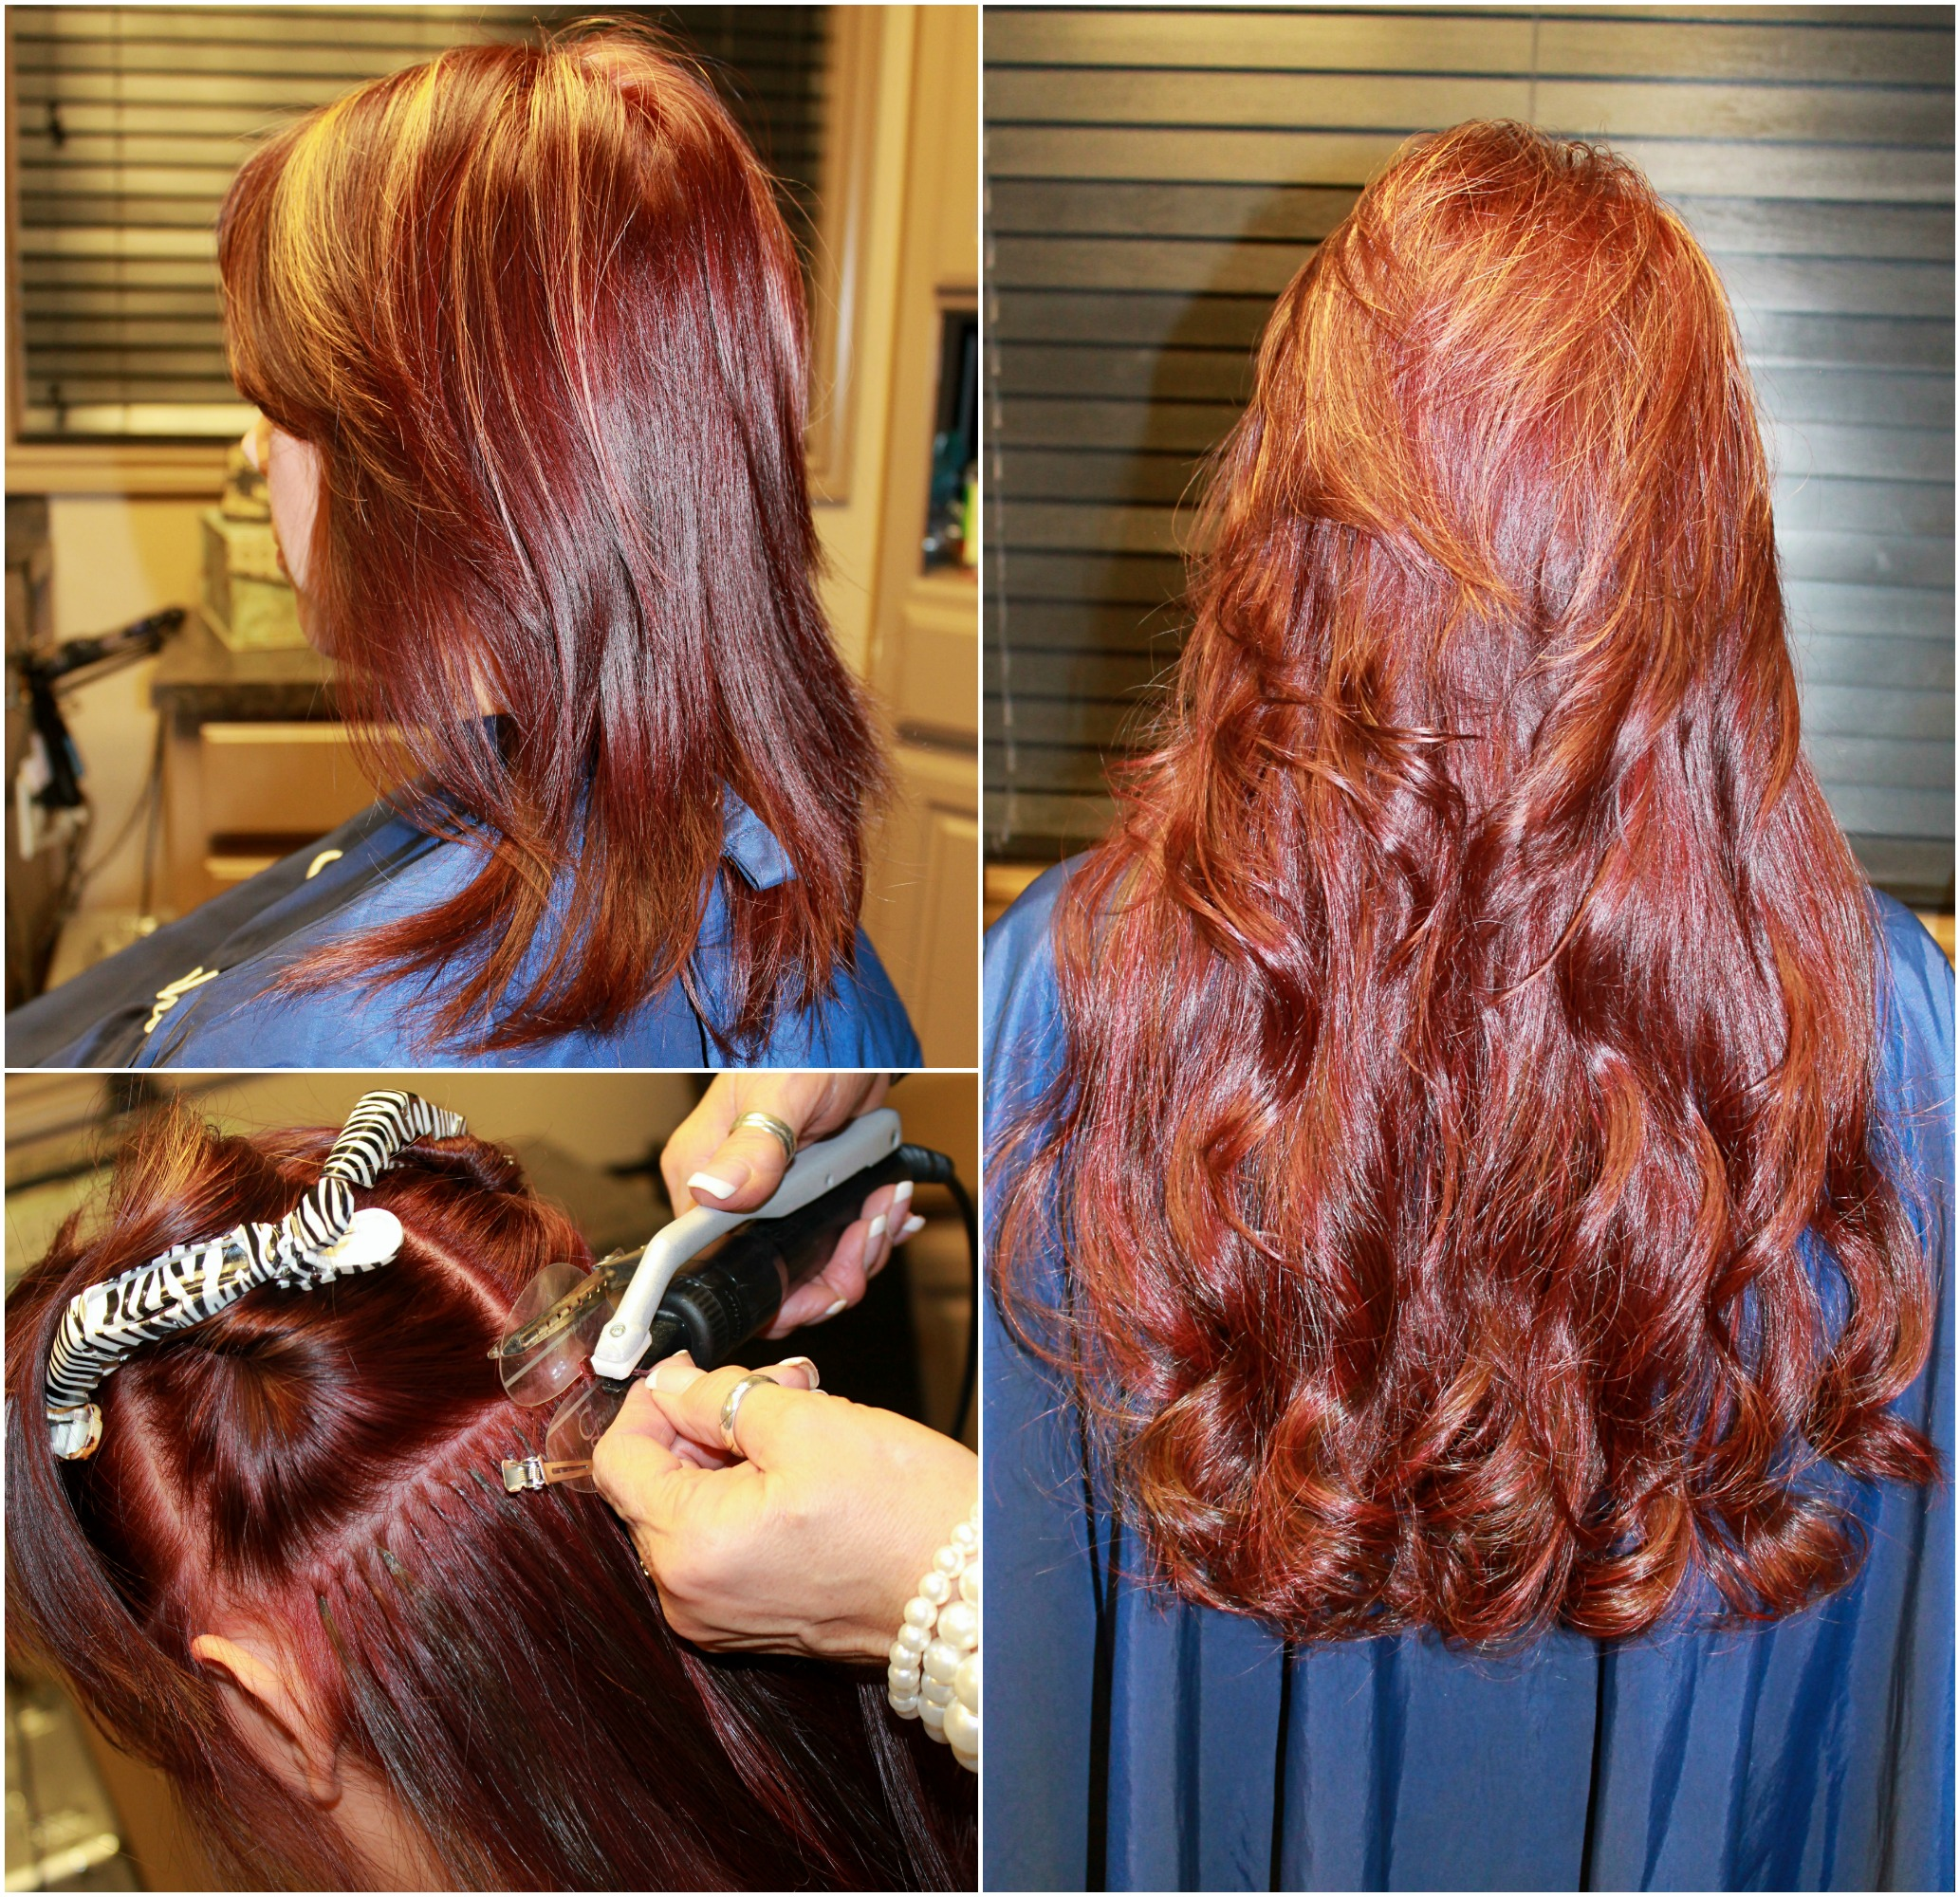 Hair salon cuts styles perms and coloring davidson taylor salon pmusecretfo Image collections